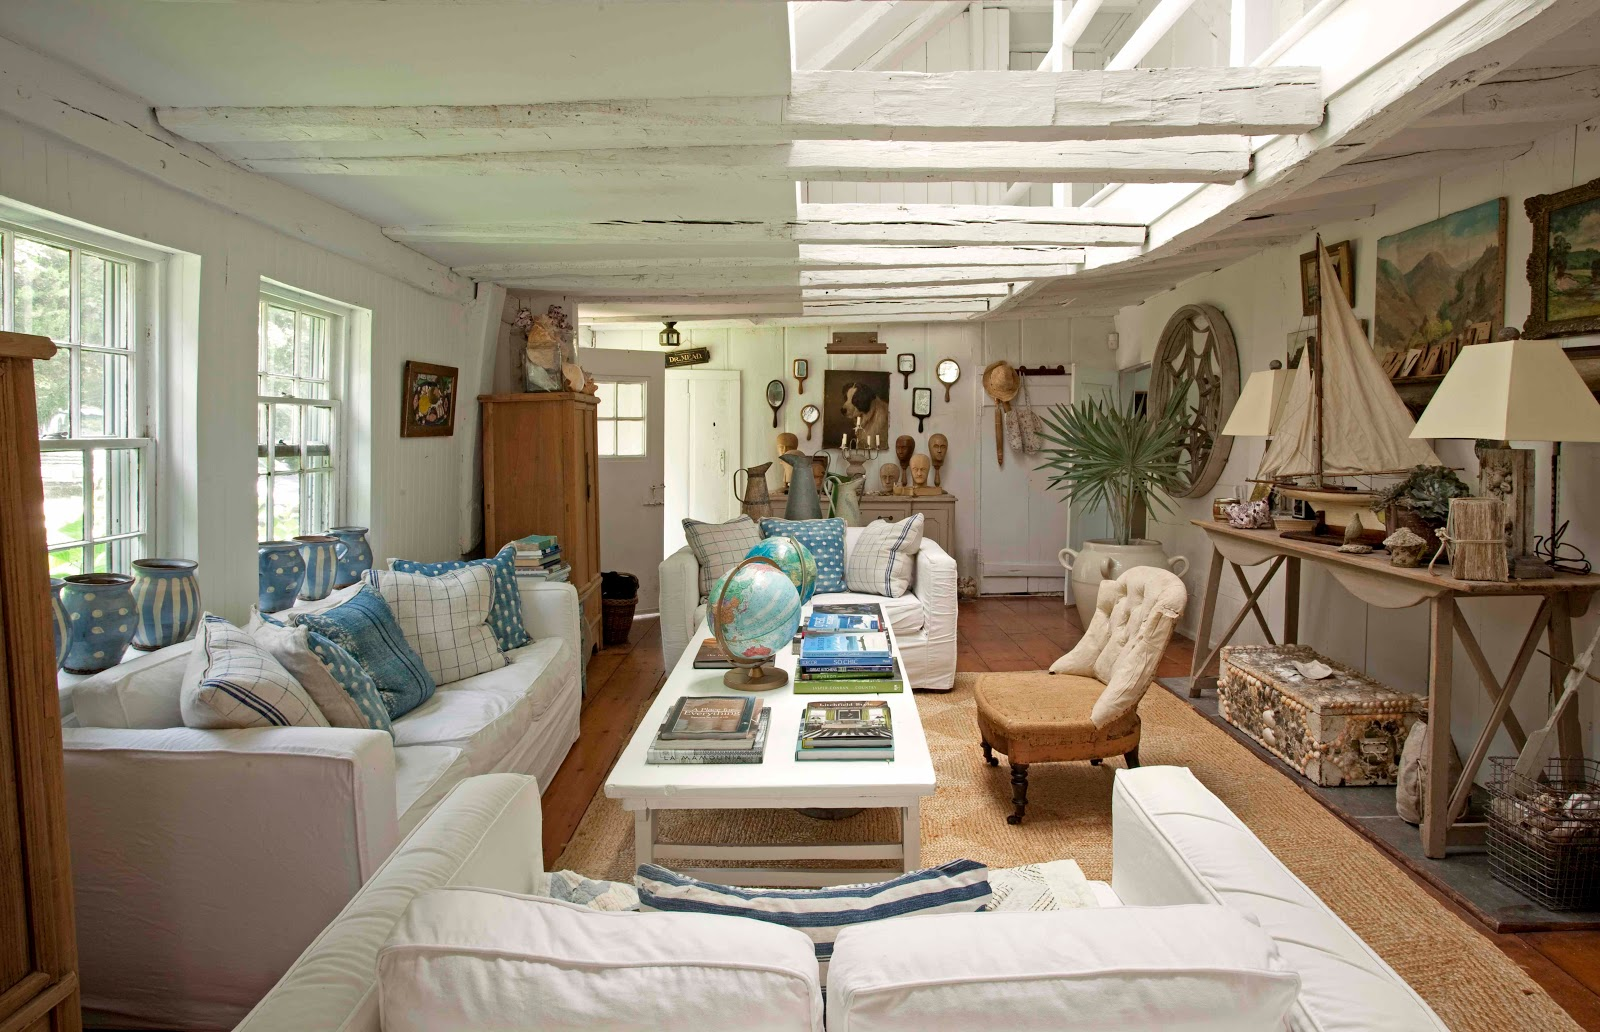 Stylebeat seaside charm rooms that inspire by the sea for Beach house style